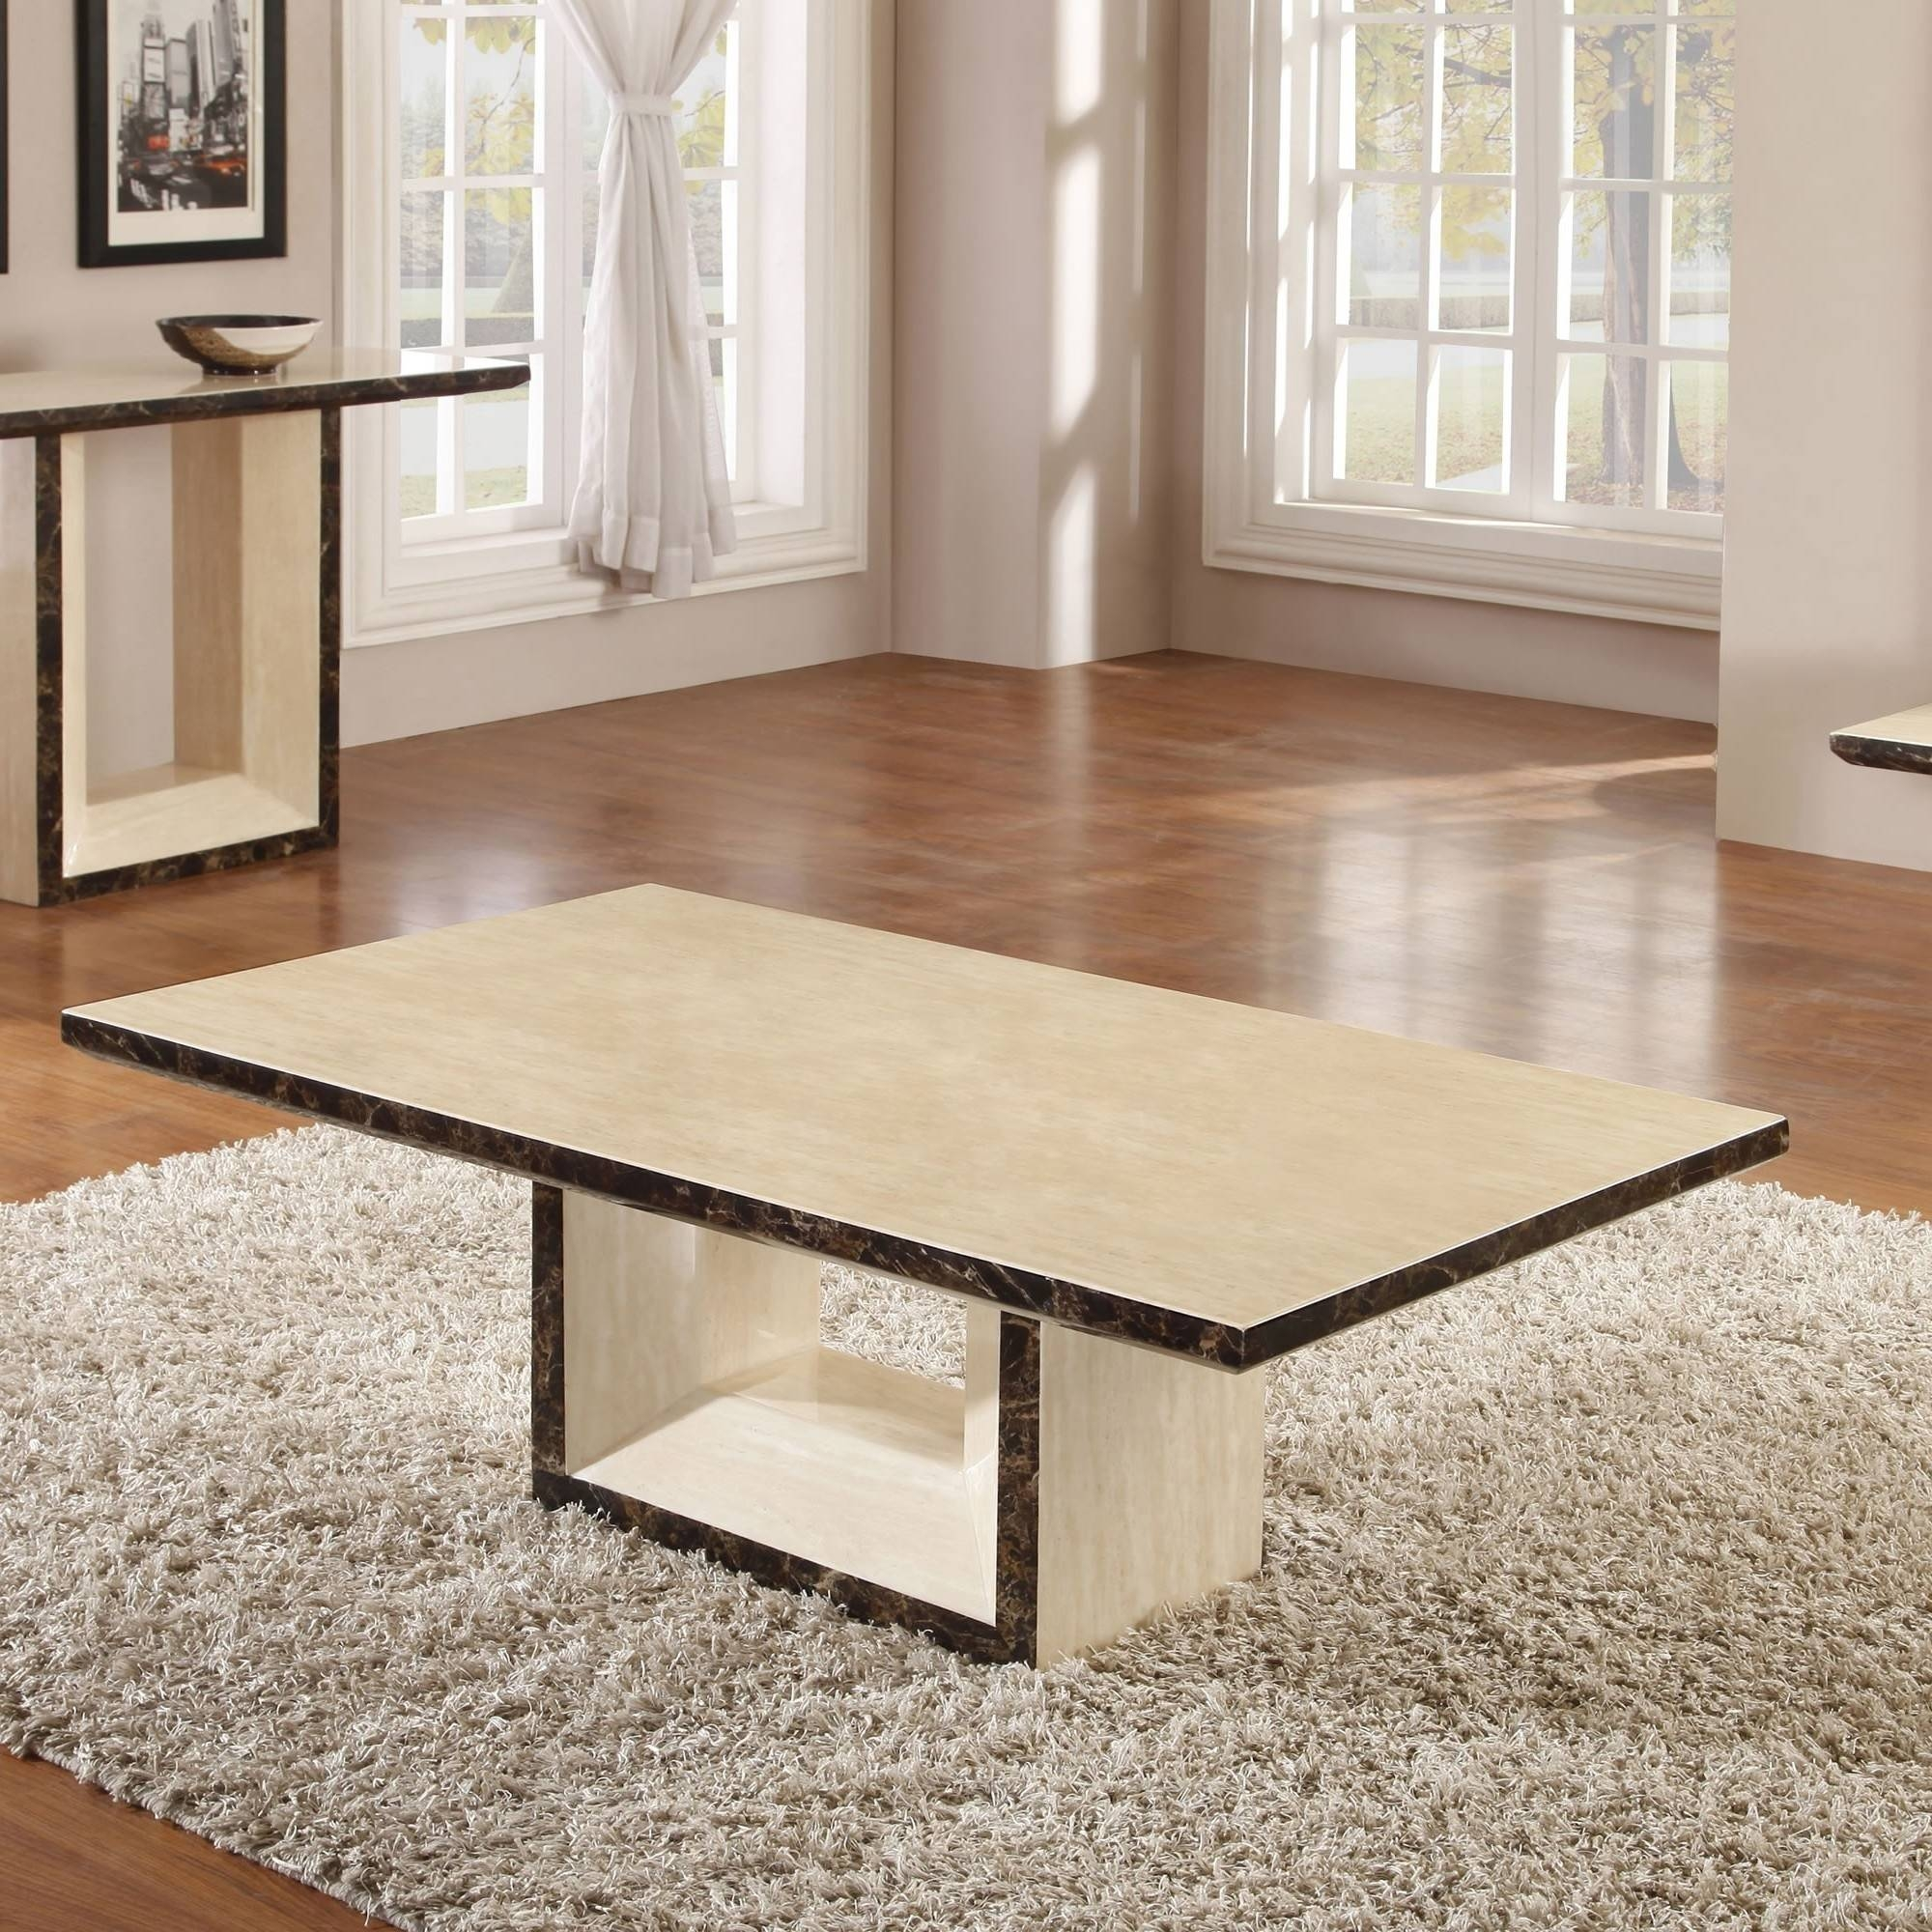 Coffee Table. Stunning Cream Coffee Table Design Ideas: New intended for Oak and Cream Coffee Tables (Image 8 of 30)